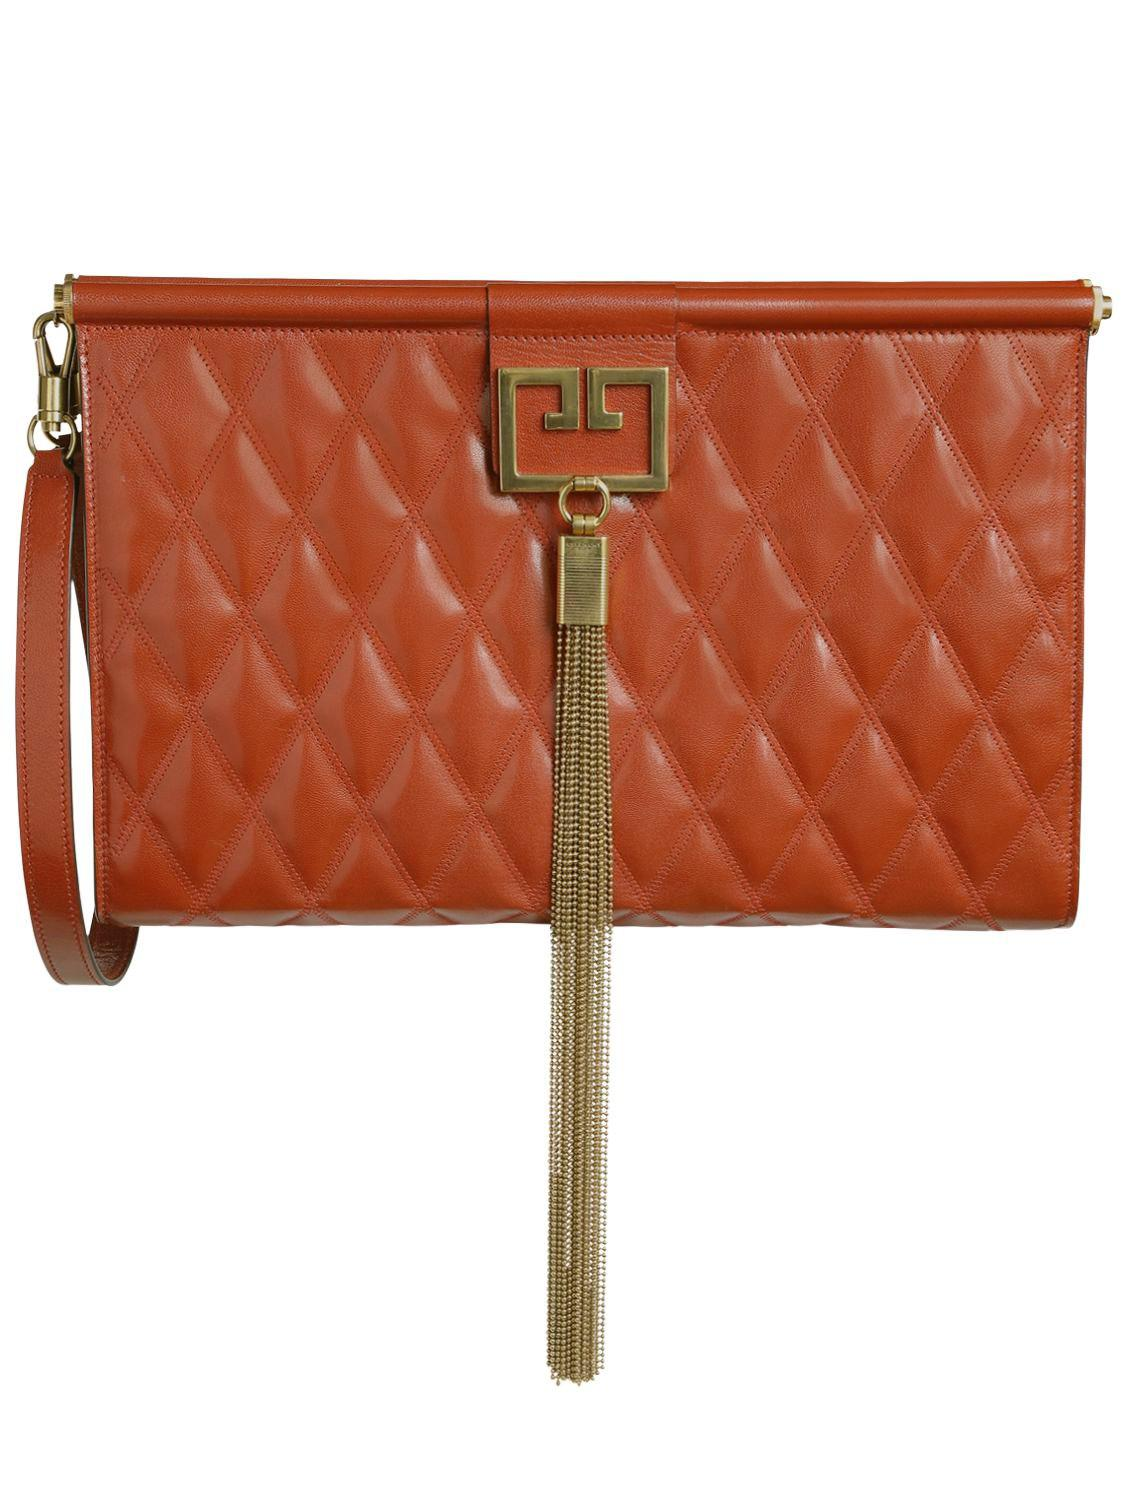 Lyst - Givenchy Large Gem Quilted Leather Clutch in Red - Save 40% 90416b43d4e70